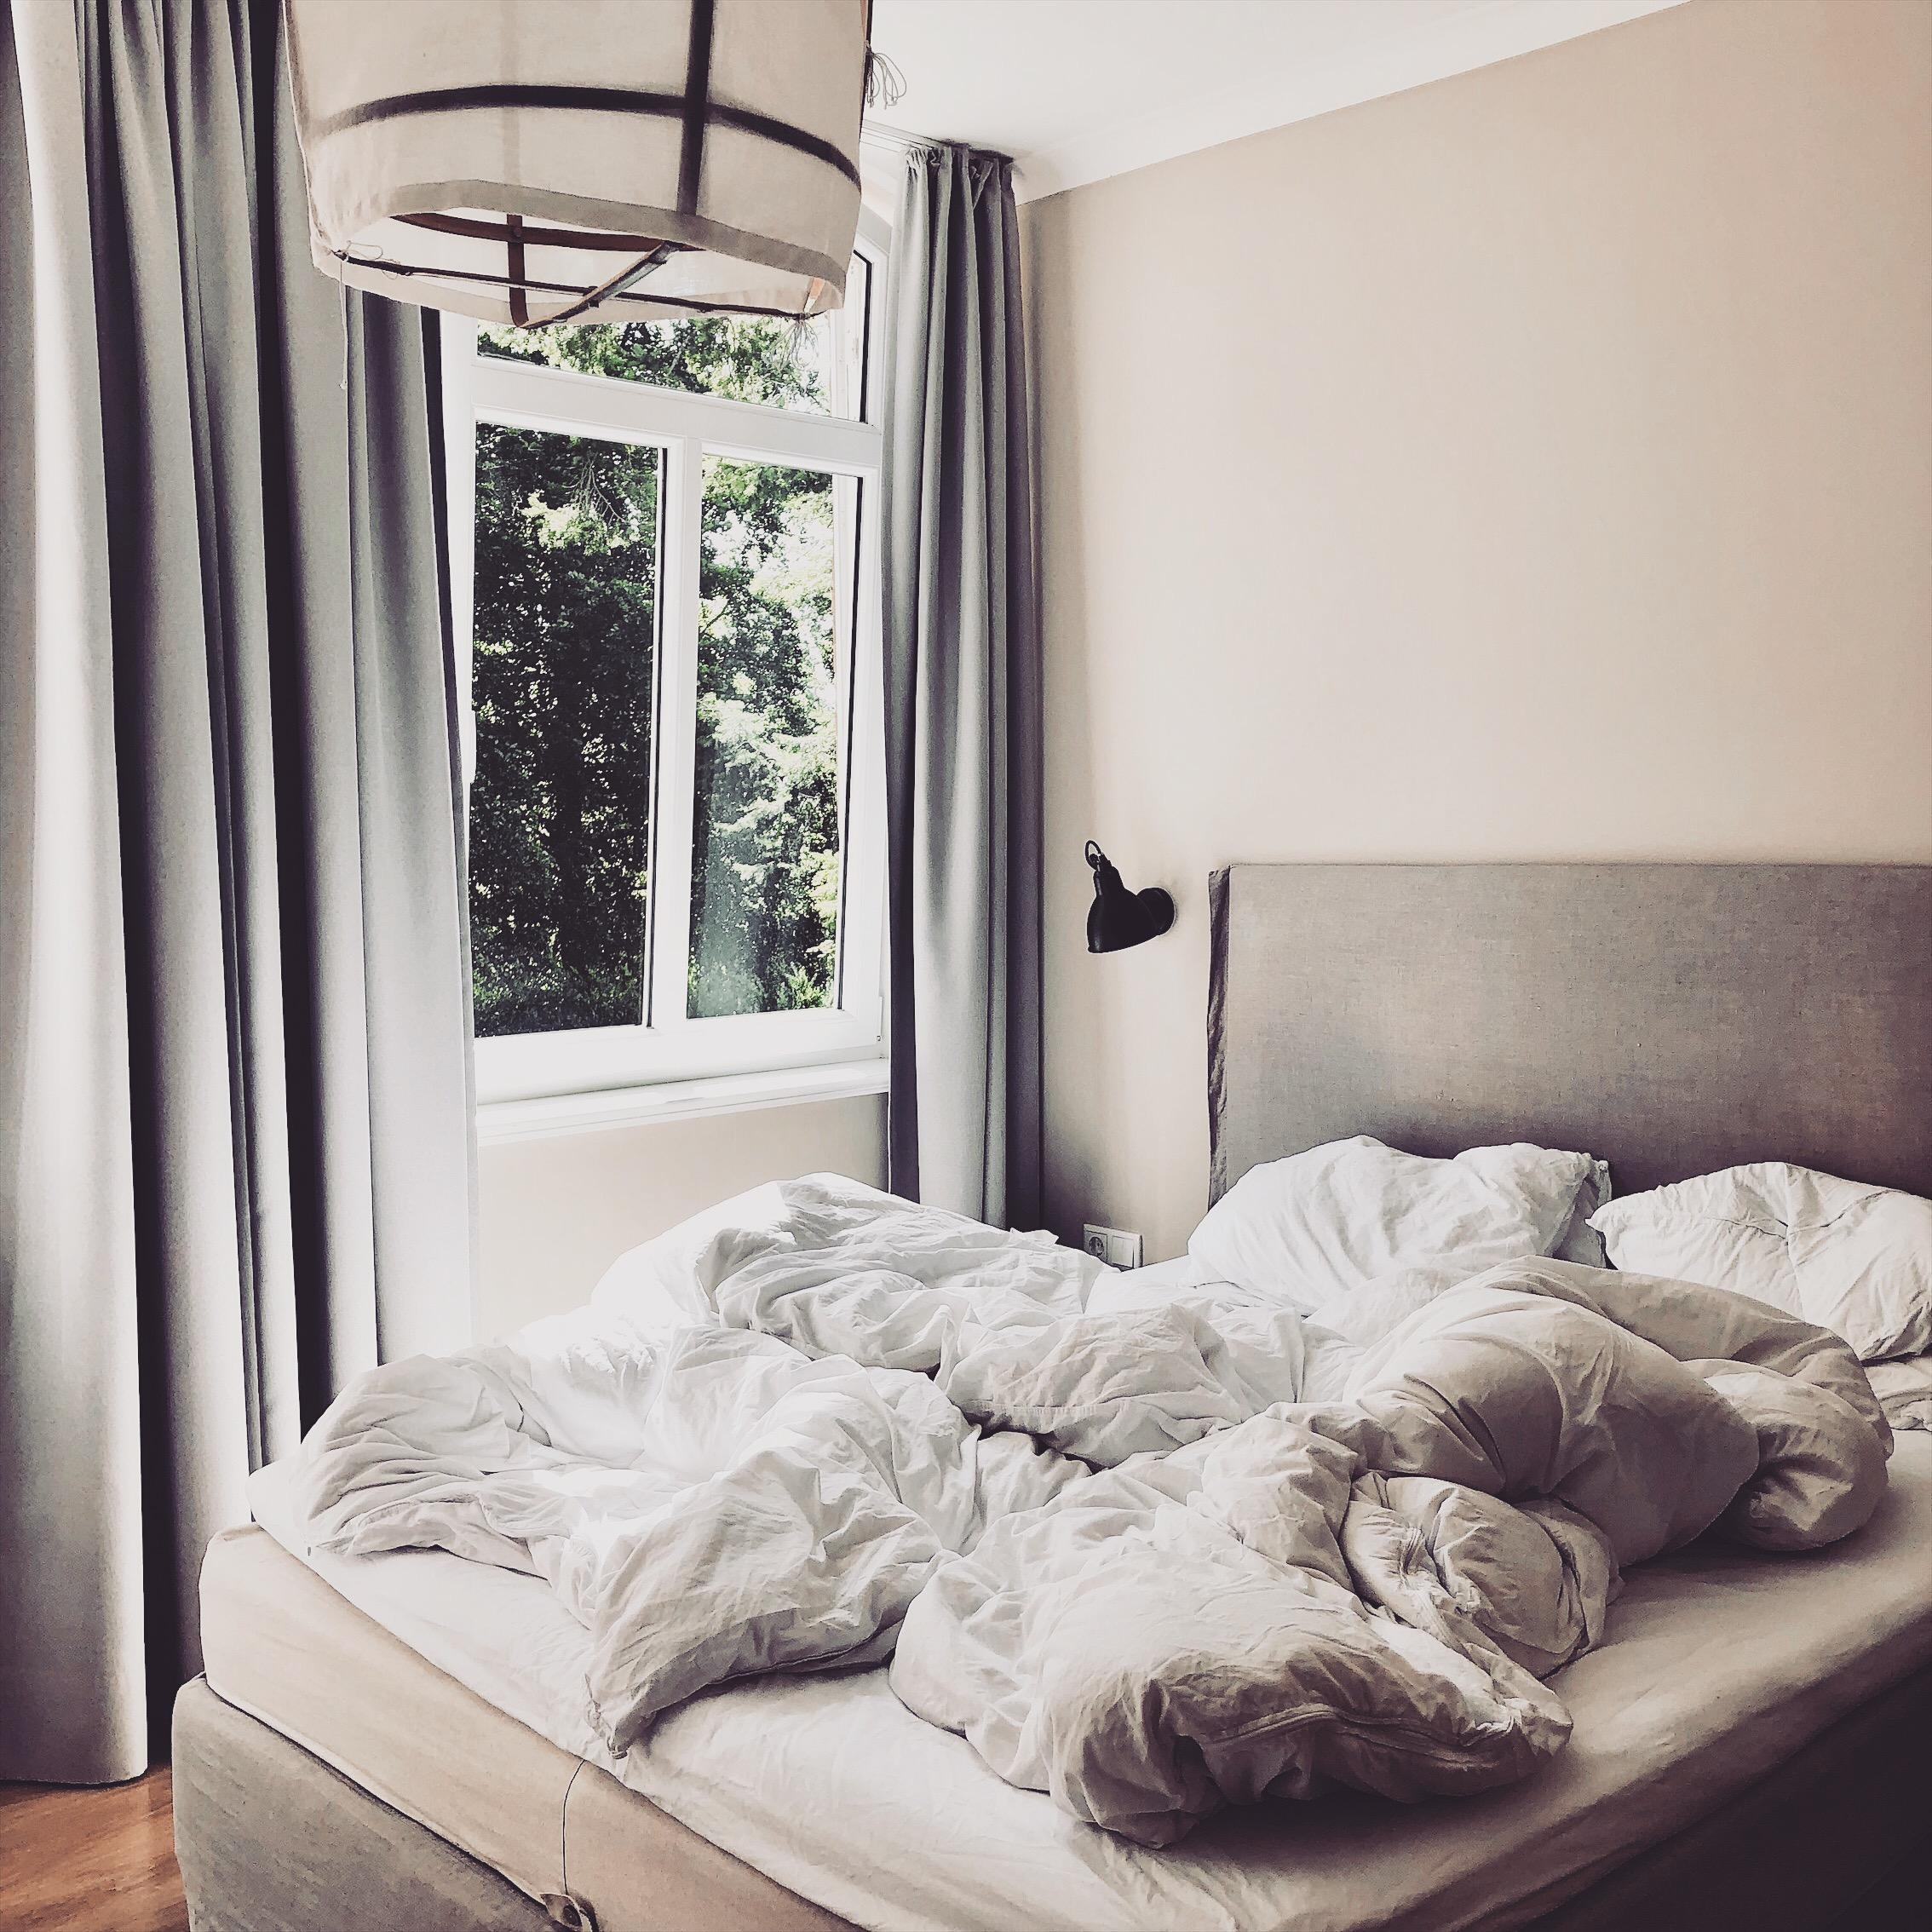 neulich im wundervollen #boutiquehotel #smuckesteed #auszeit #onmybed #bed #morningslikethese #interior #nordic #scandi